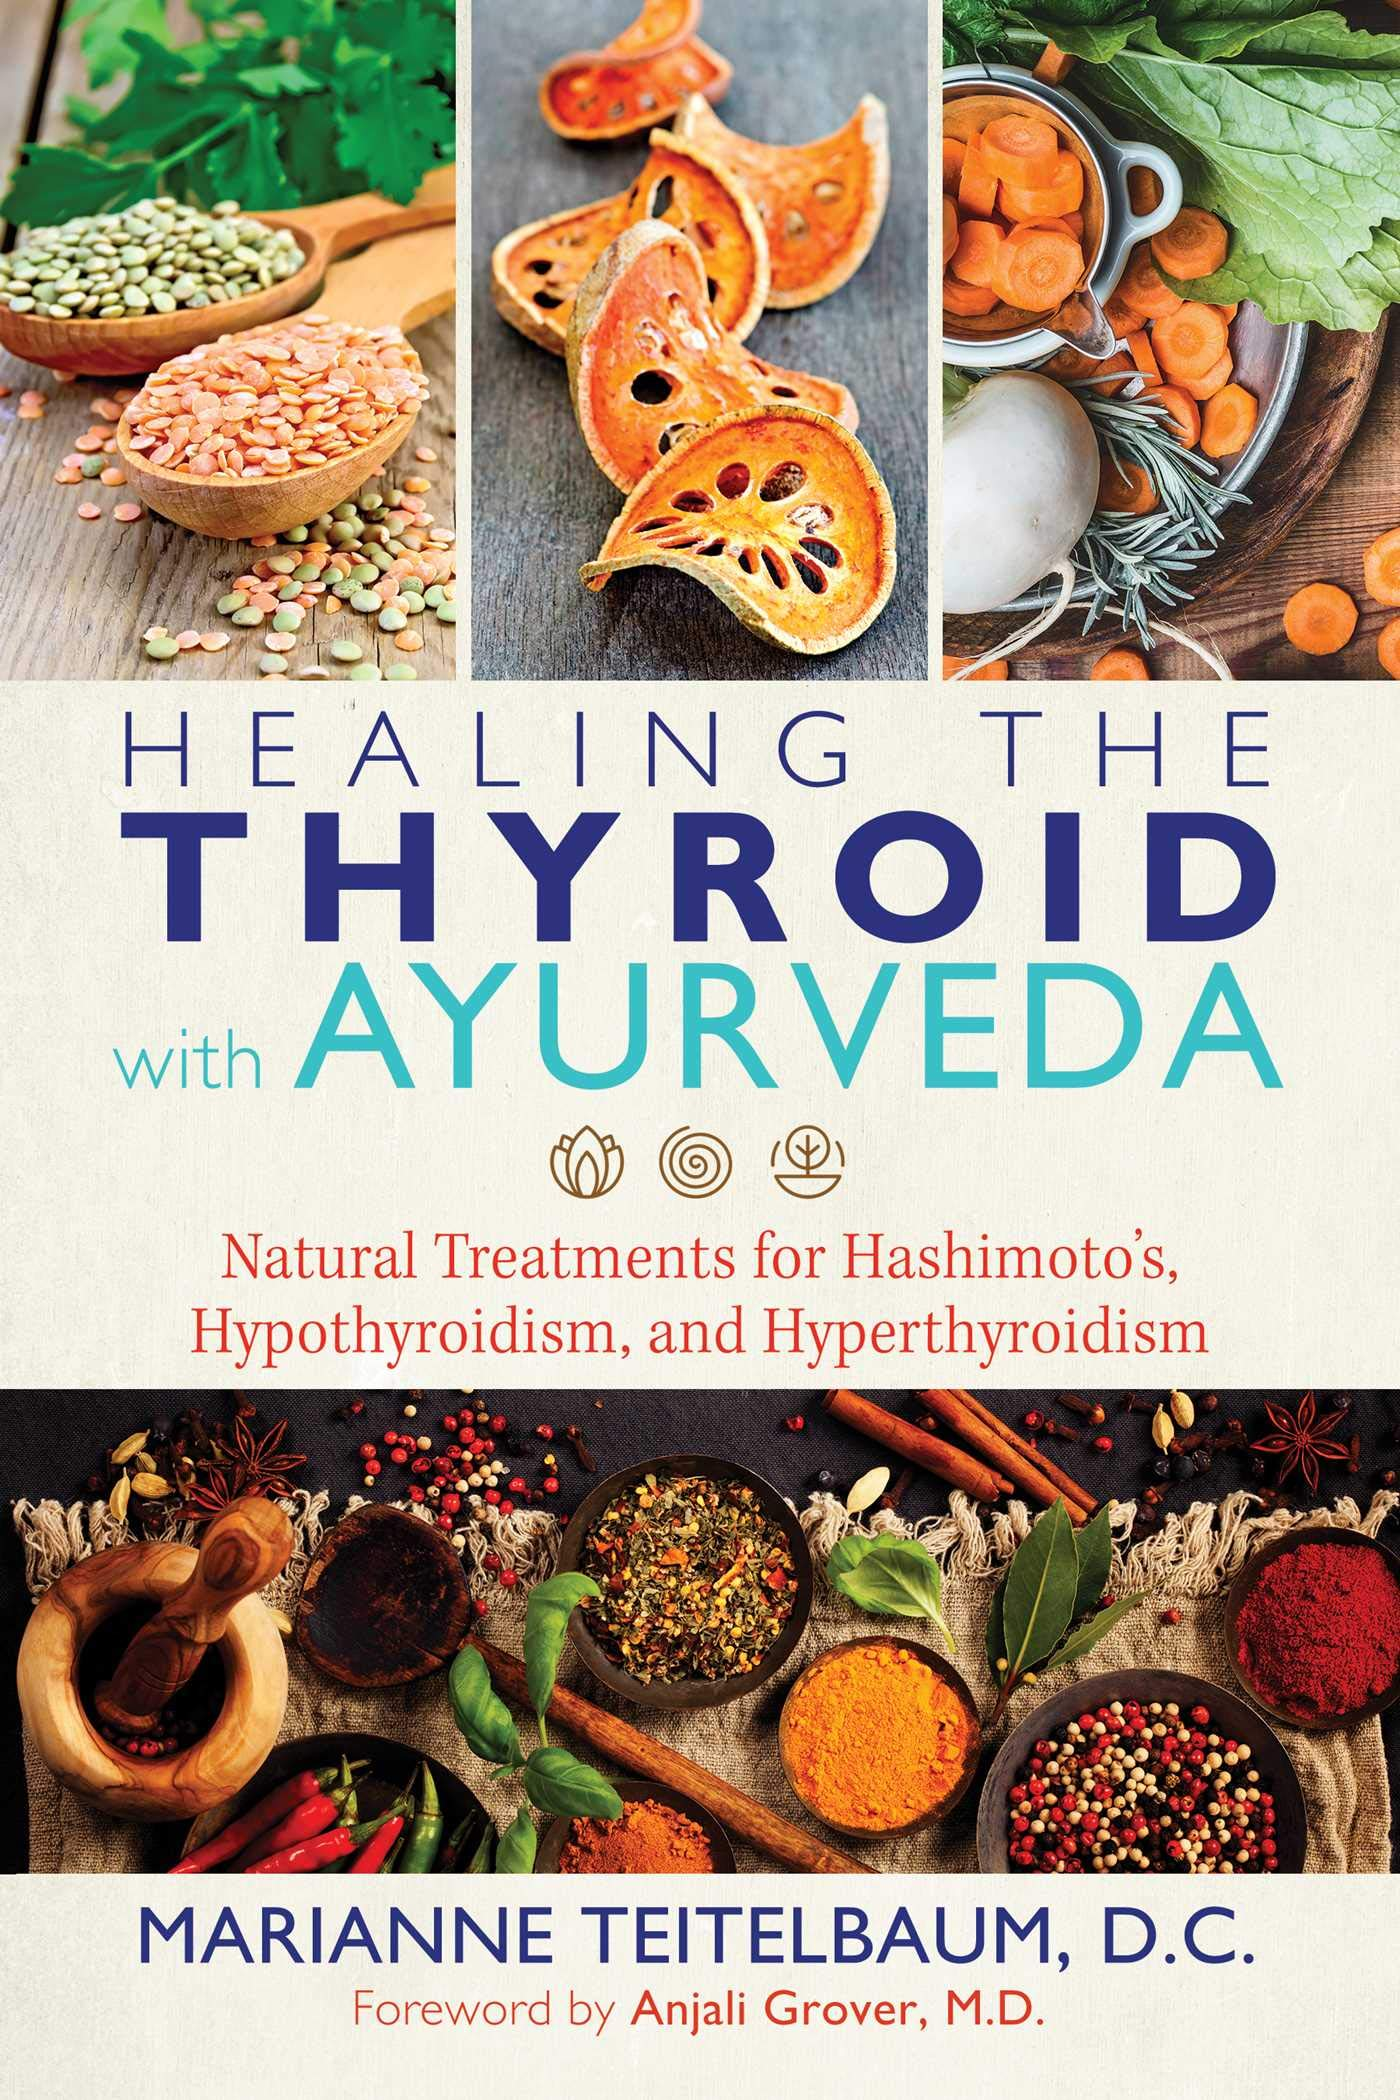 Healing The Thyroid With Ayurveda  Natural Treatments For Hashimoto's Hypothyroidism And Hyperthyroidism